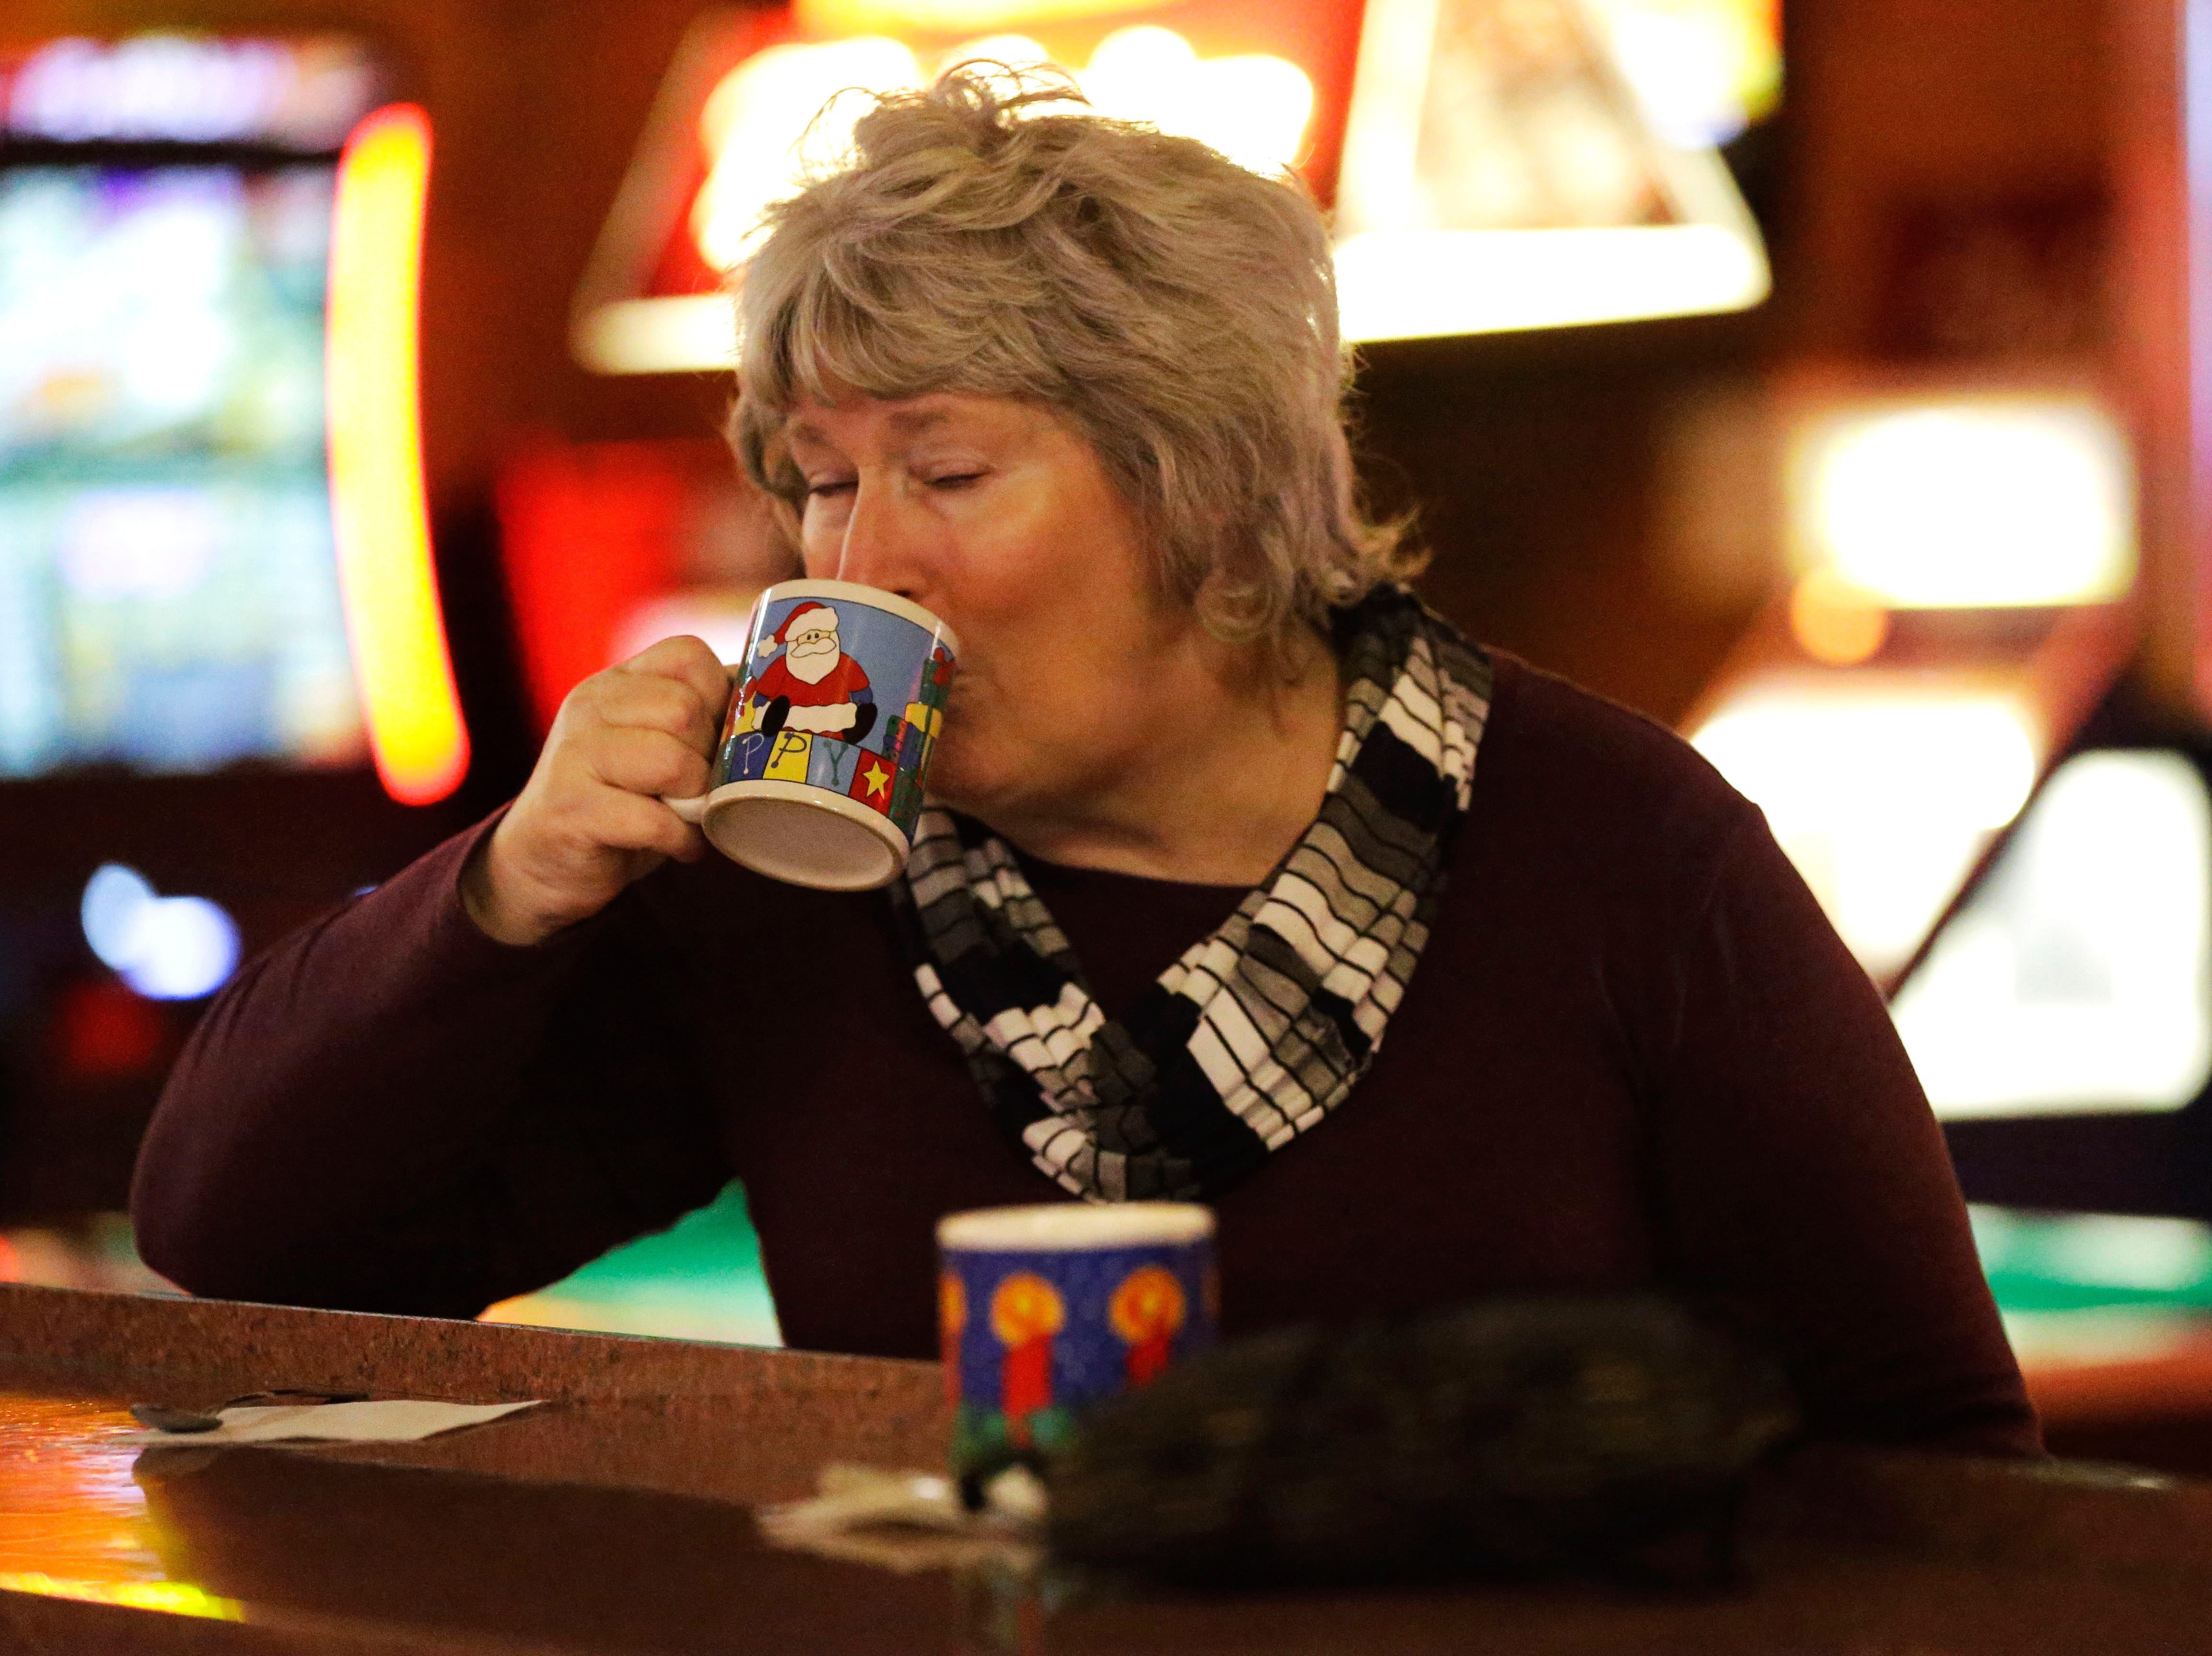 Patron Linda Brandt enjoys a Tom and Jerry on Friday, December 7, 2018, at The Domino Bar in Wausau, Wis. The Domino serves the popular drink every year, from Thanksgiving until New Year's Day.Tork Mason/USA Today NETWORK-Wisconsin